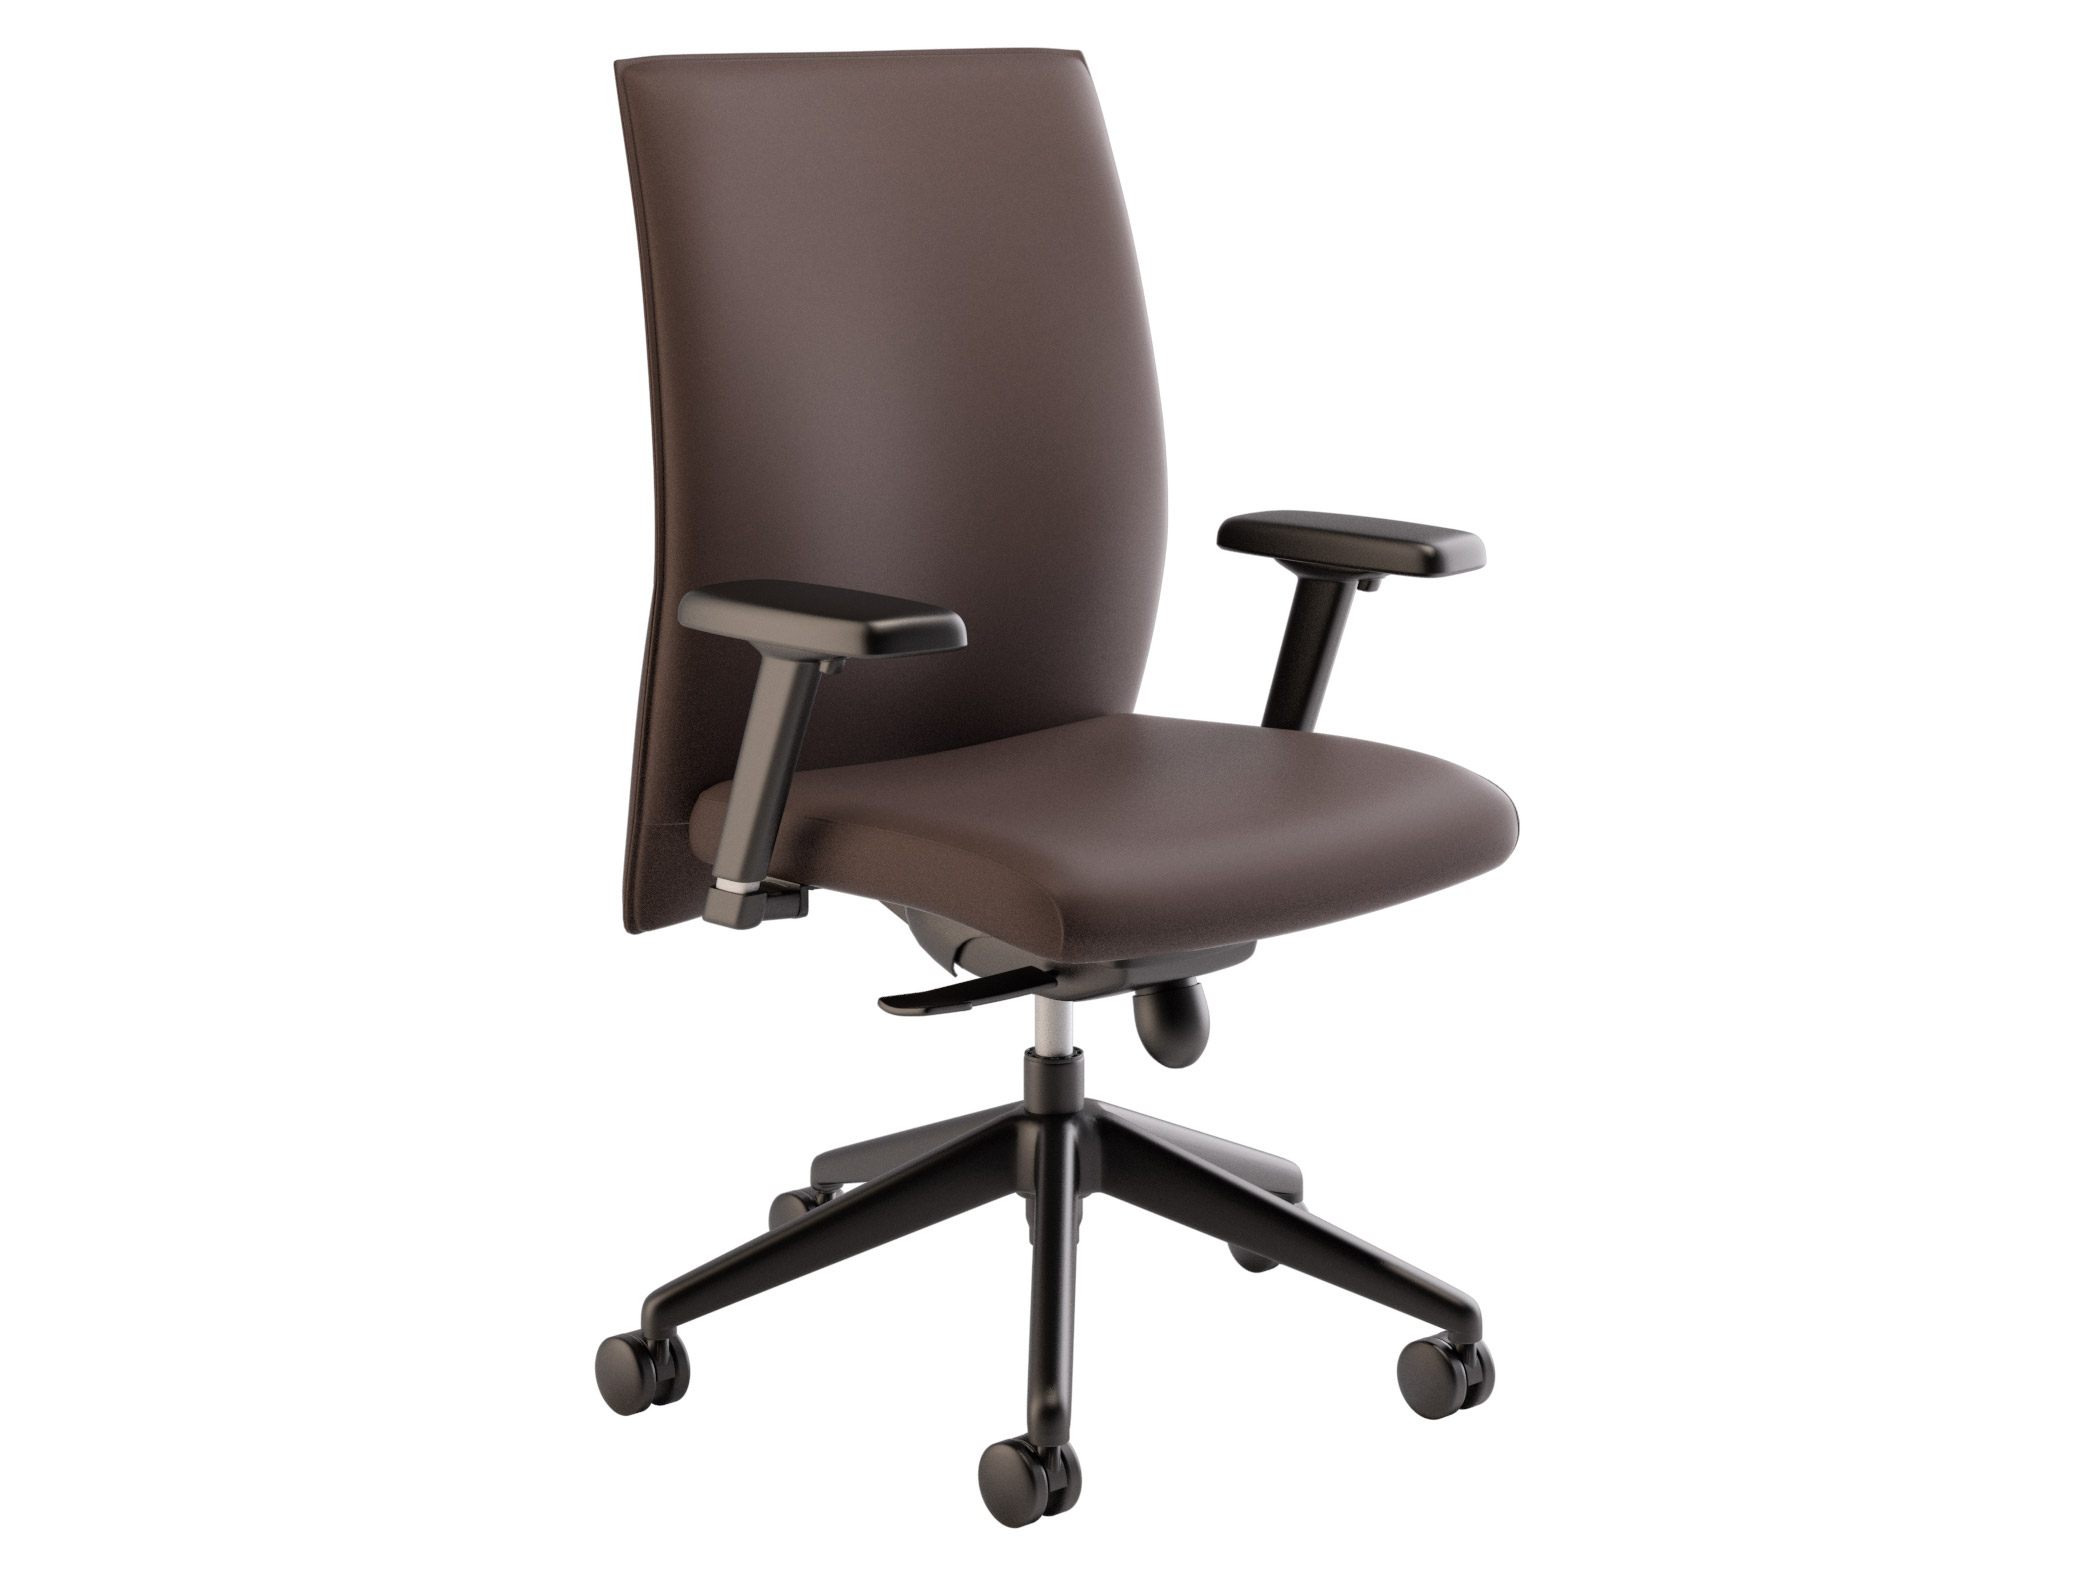 Exceptionnel Brown Office Chair   Maxim Chairs For Office